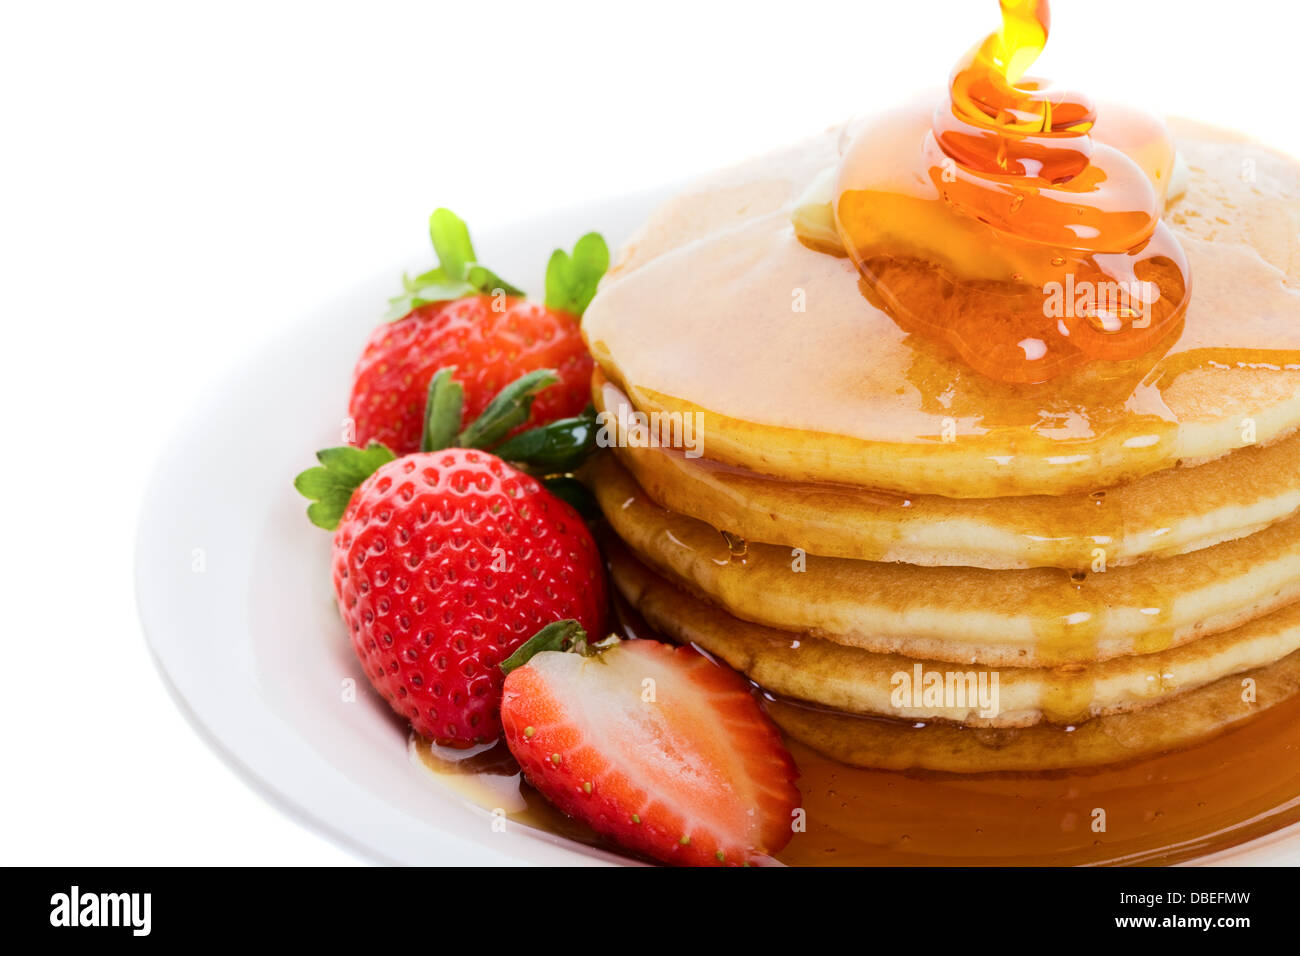 Pancakes and strawberry with maple syrup poured on top - Stock Image